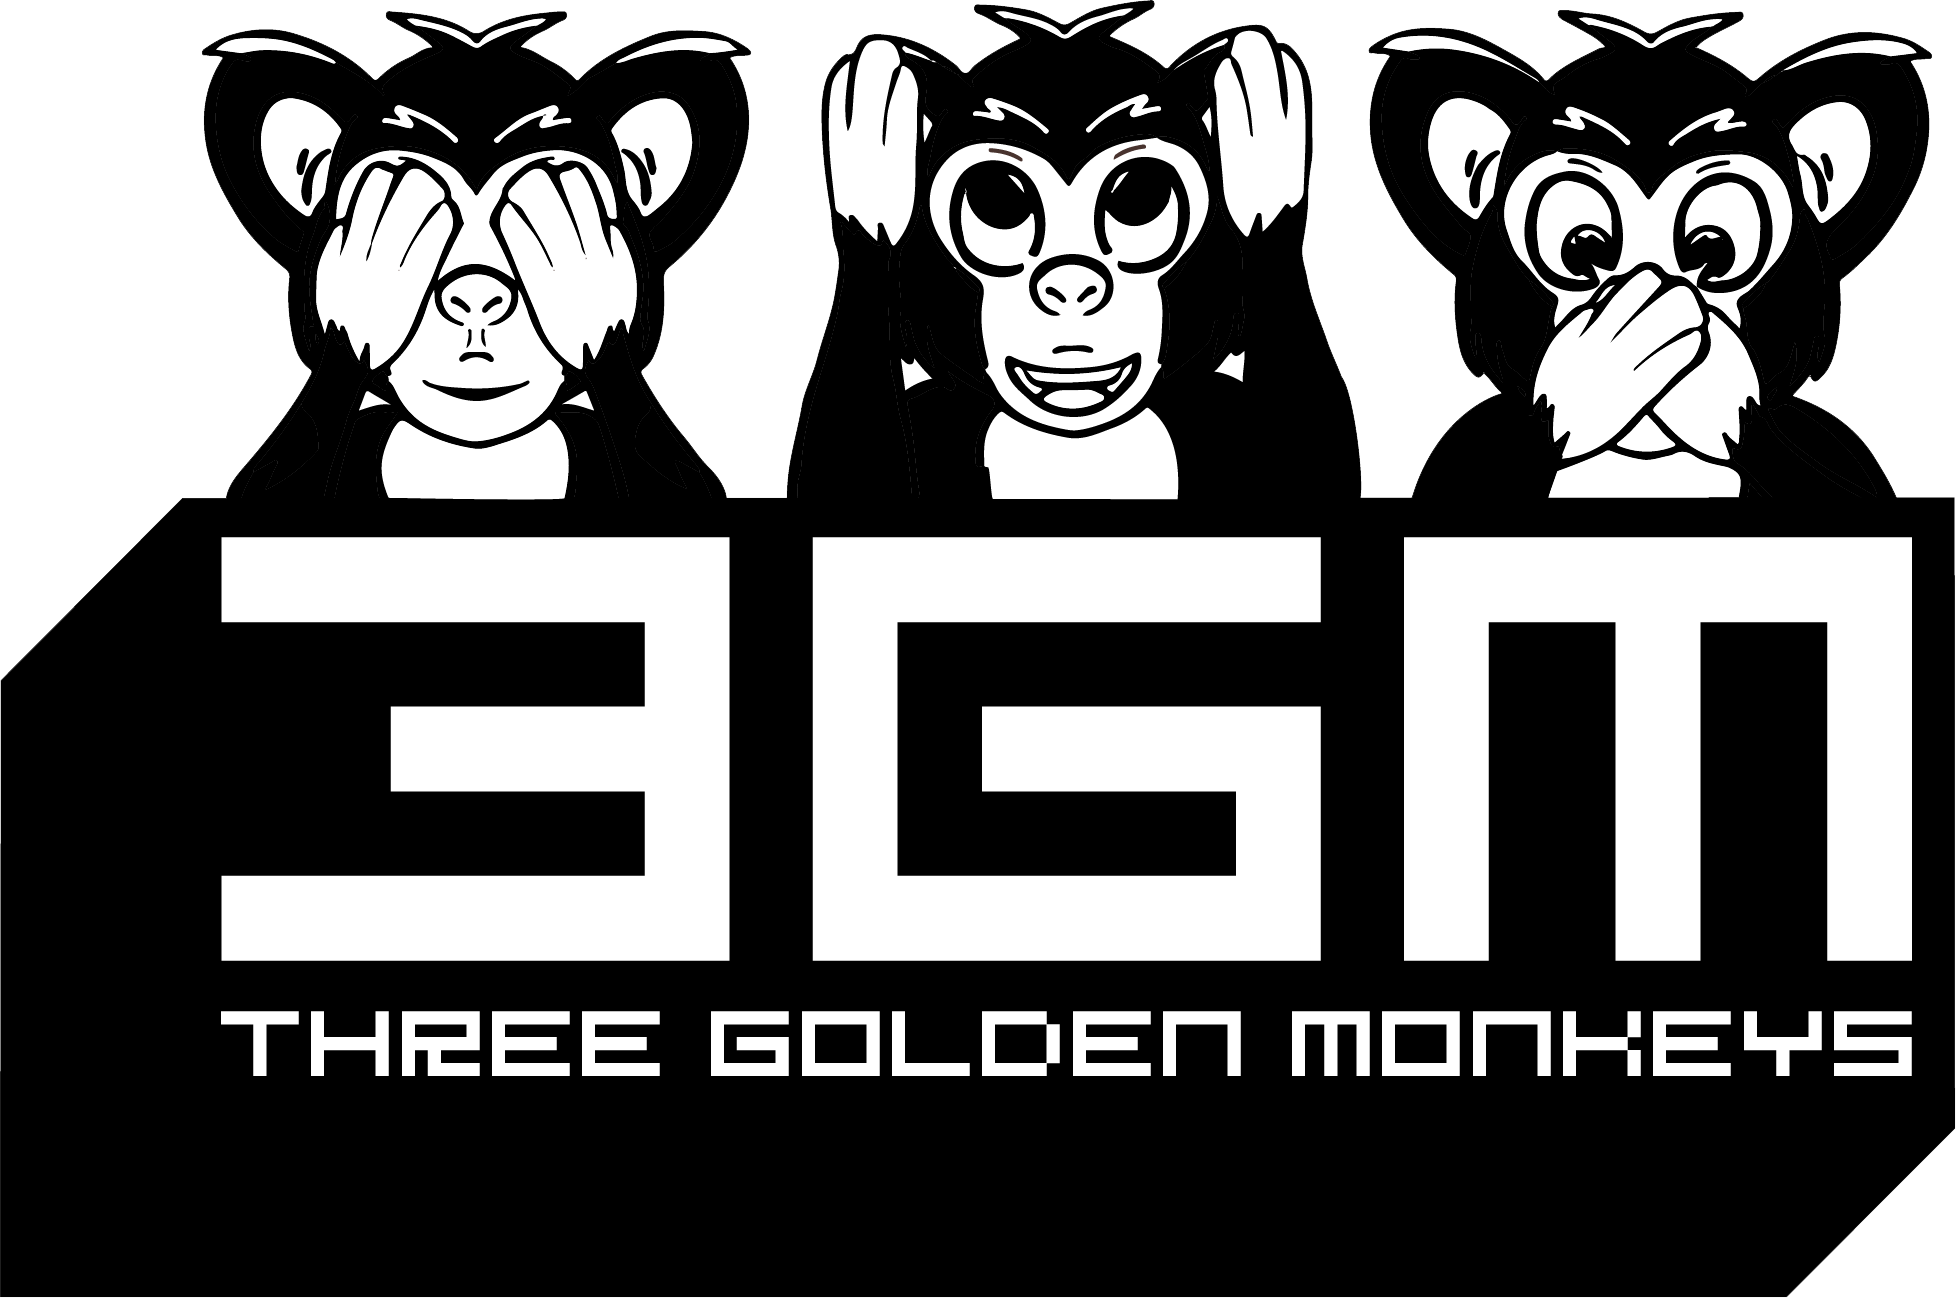 avion - Three Golden Monkeys Lab